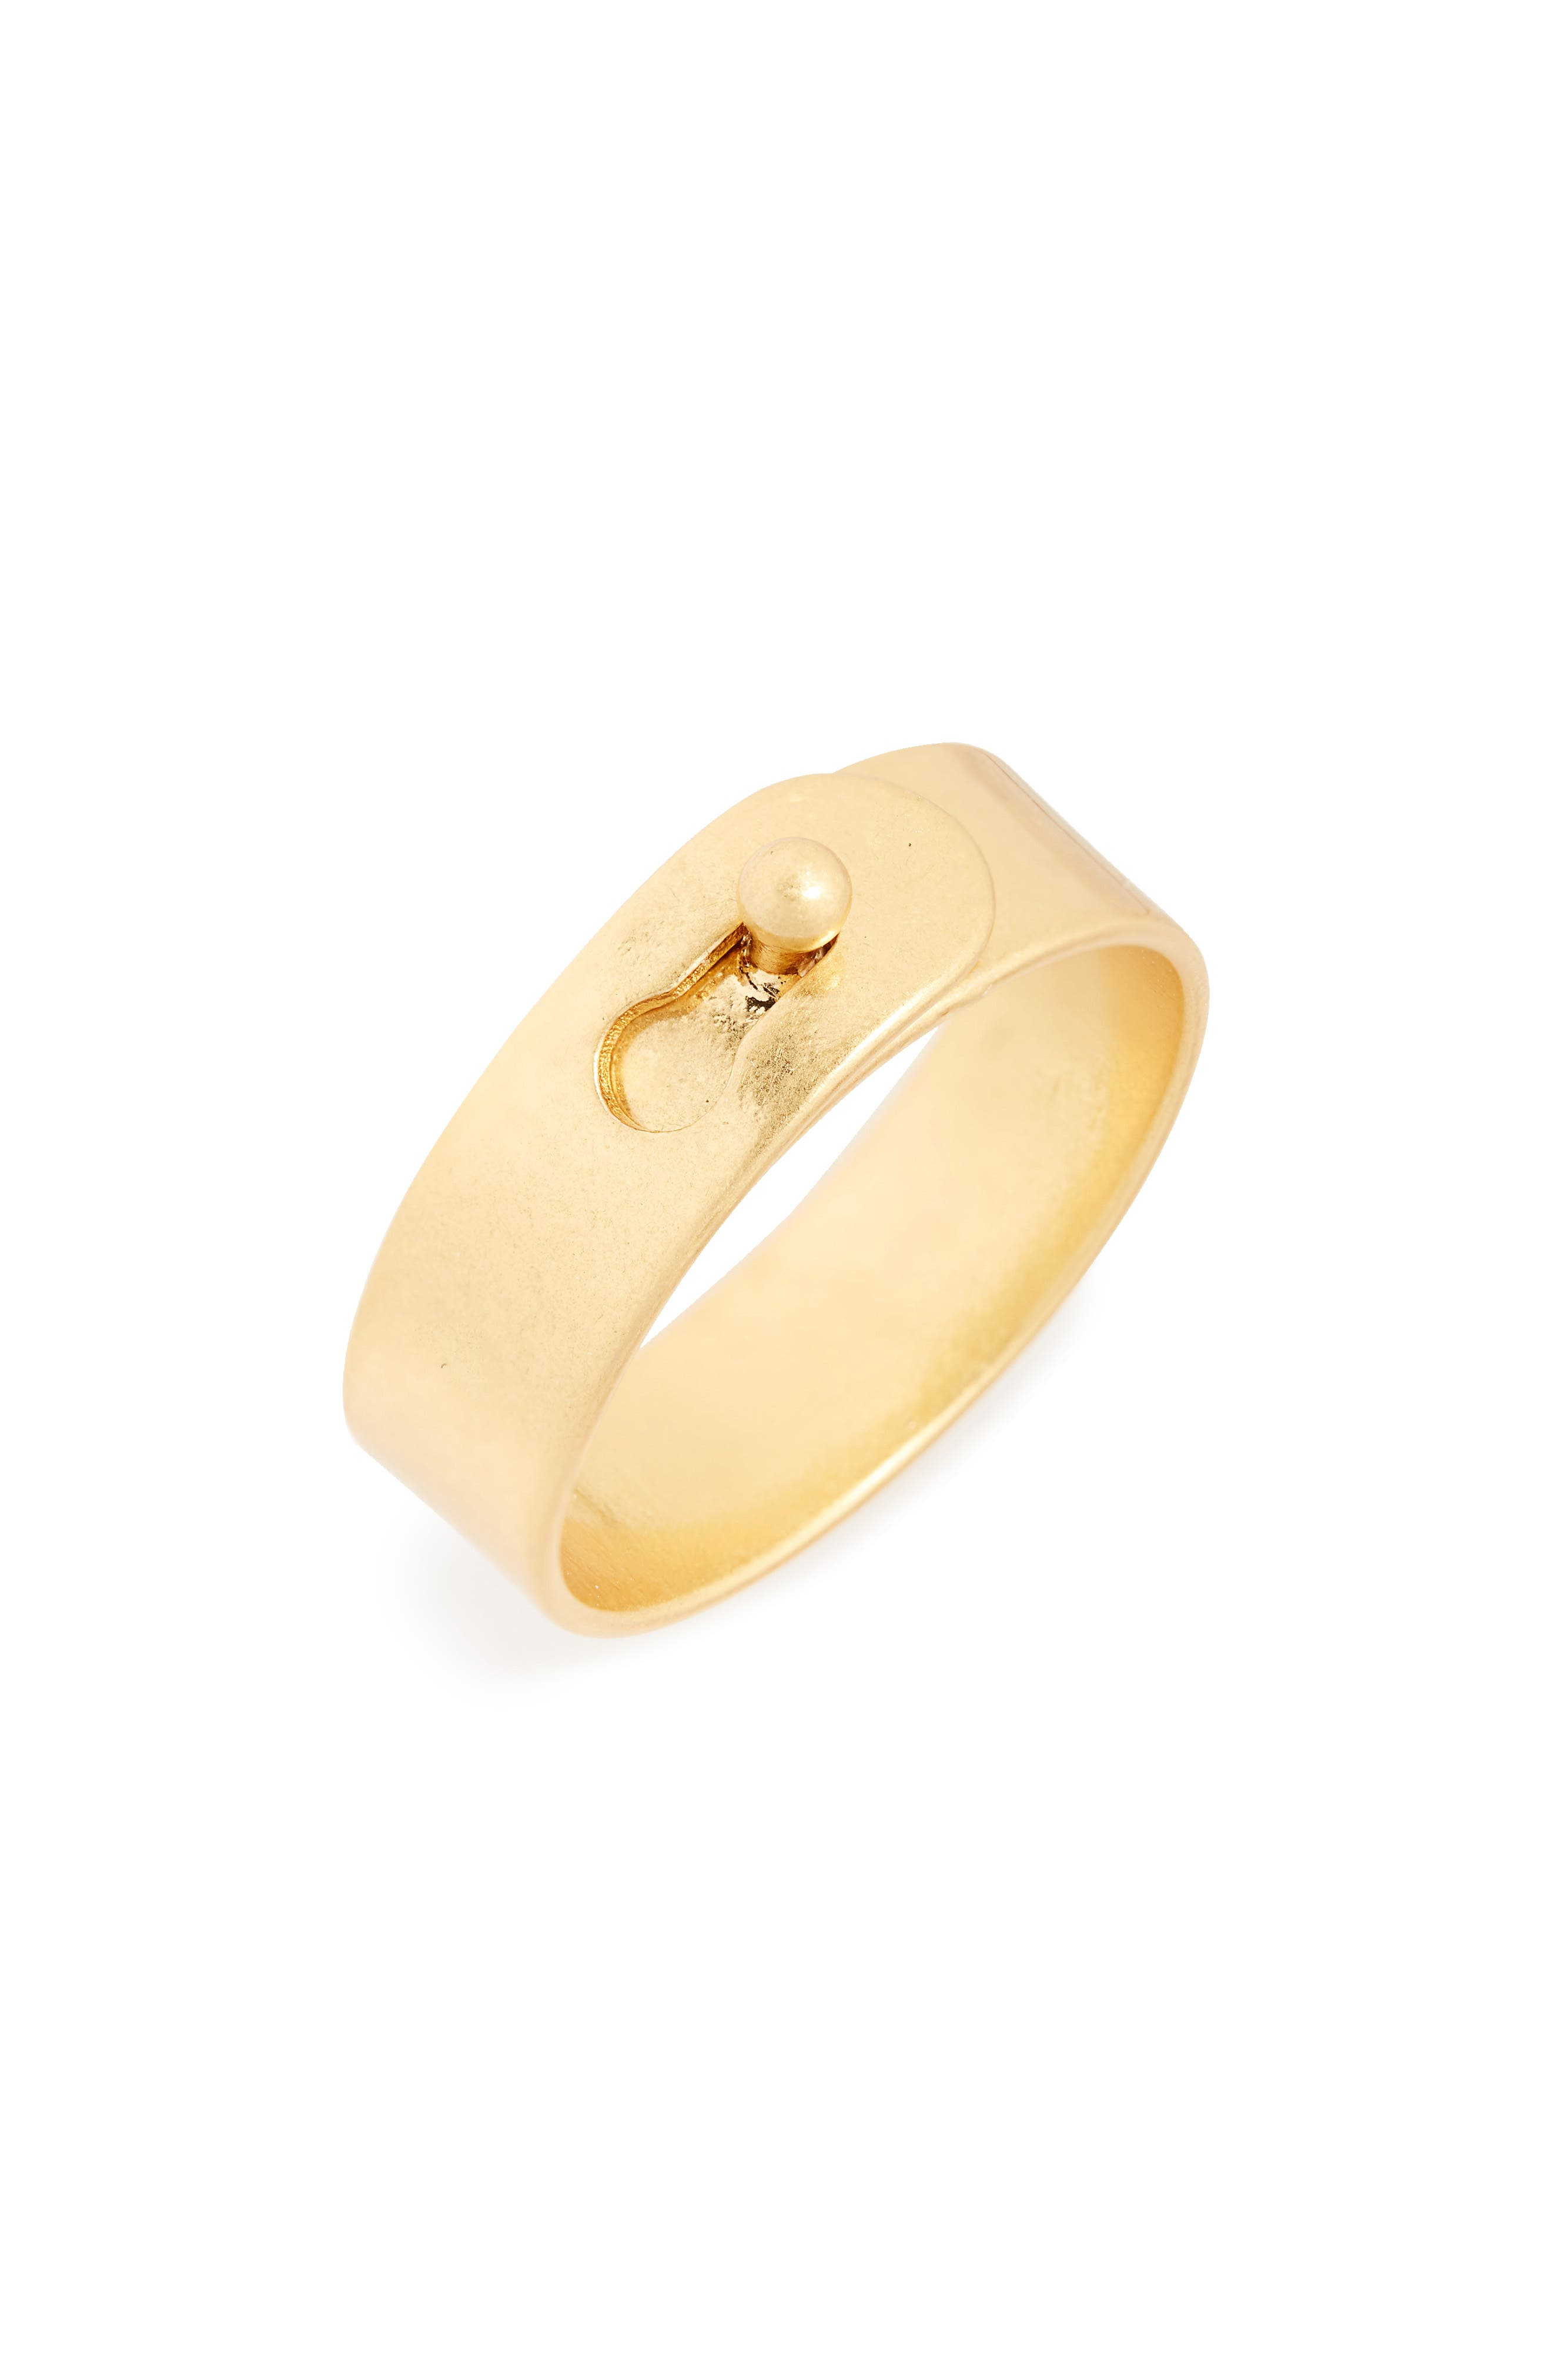 MADEWELL, Glider Ring, Main thumbnail 1, color, VINTAGE GOLD